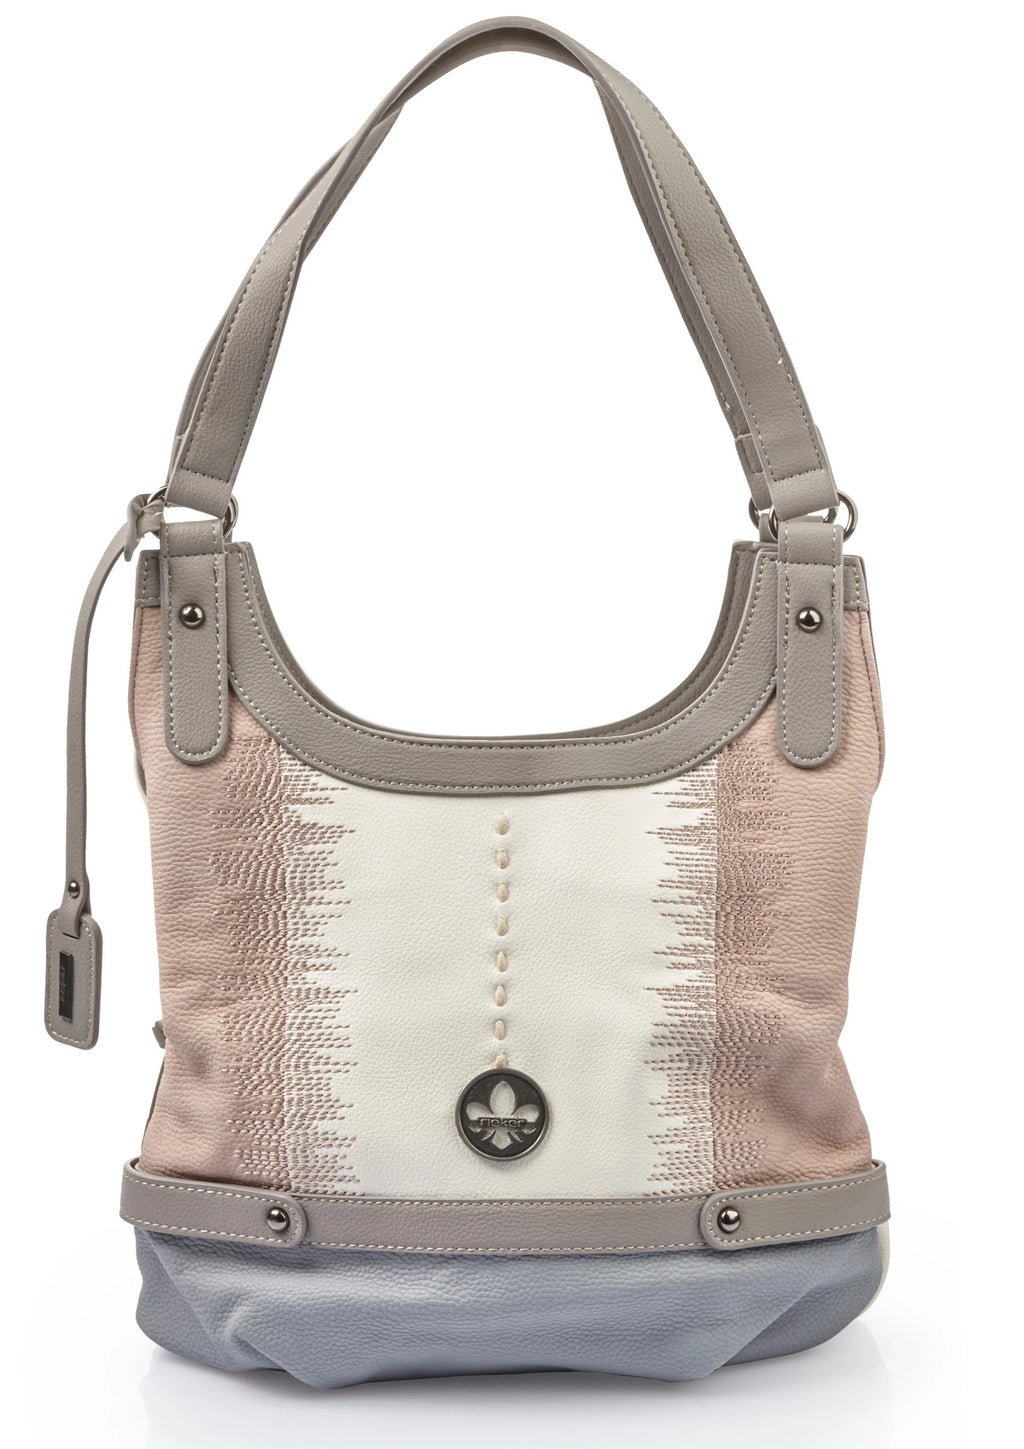 Rieker - H1334 Grey/Rose/White Handbag